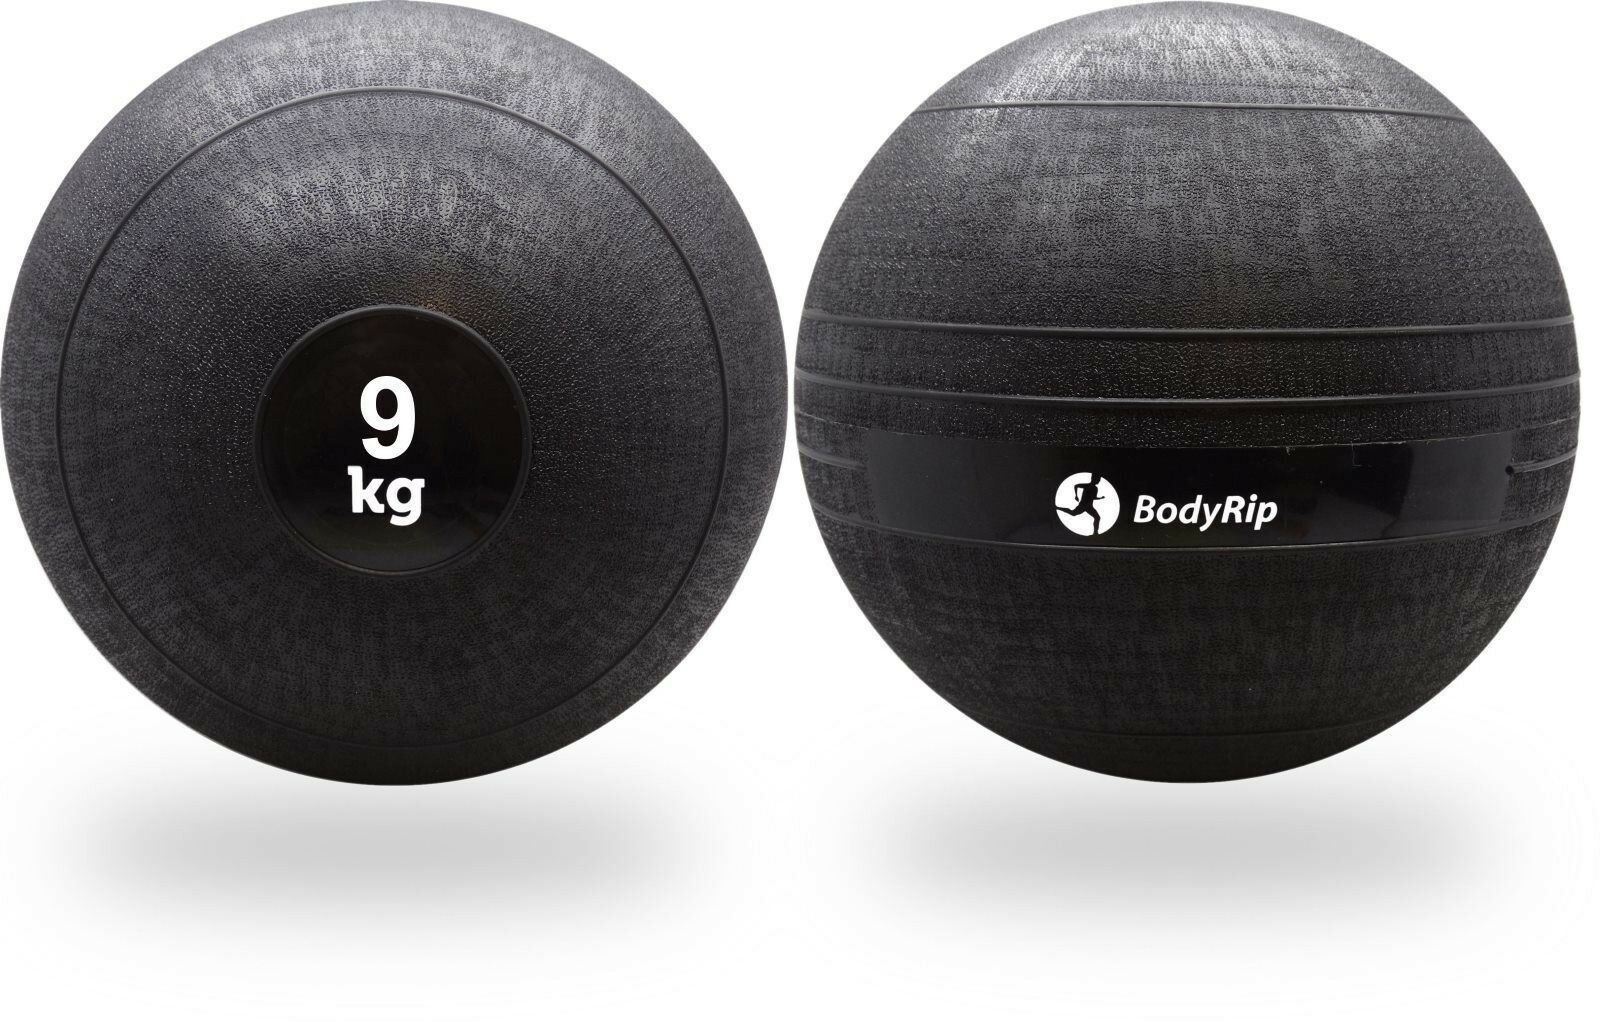 BodyRip 9 Kg Slam Ball No Bounce Weight Crossfit Workout Mma Boxing Fitness Gym